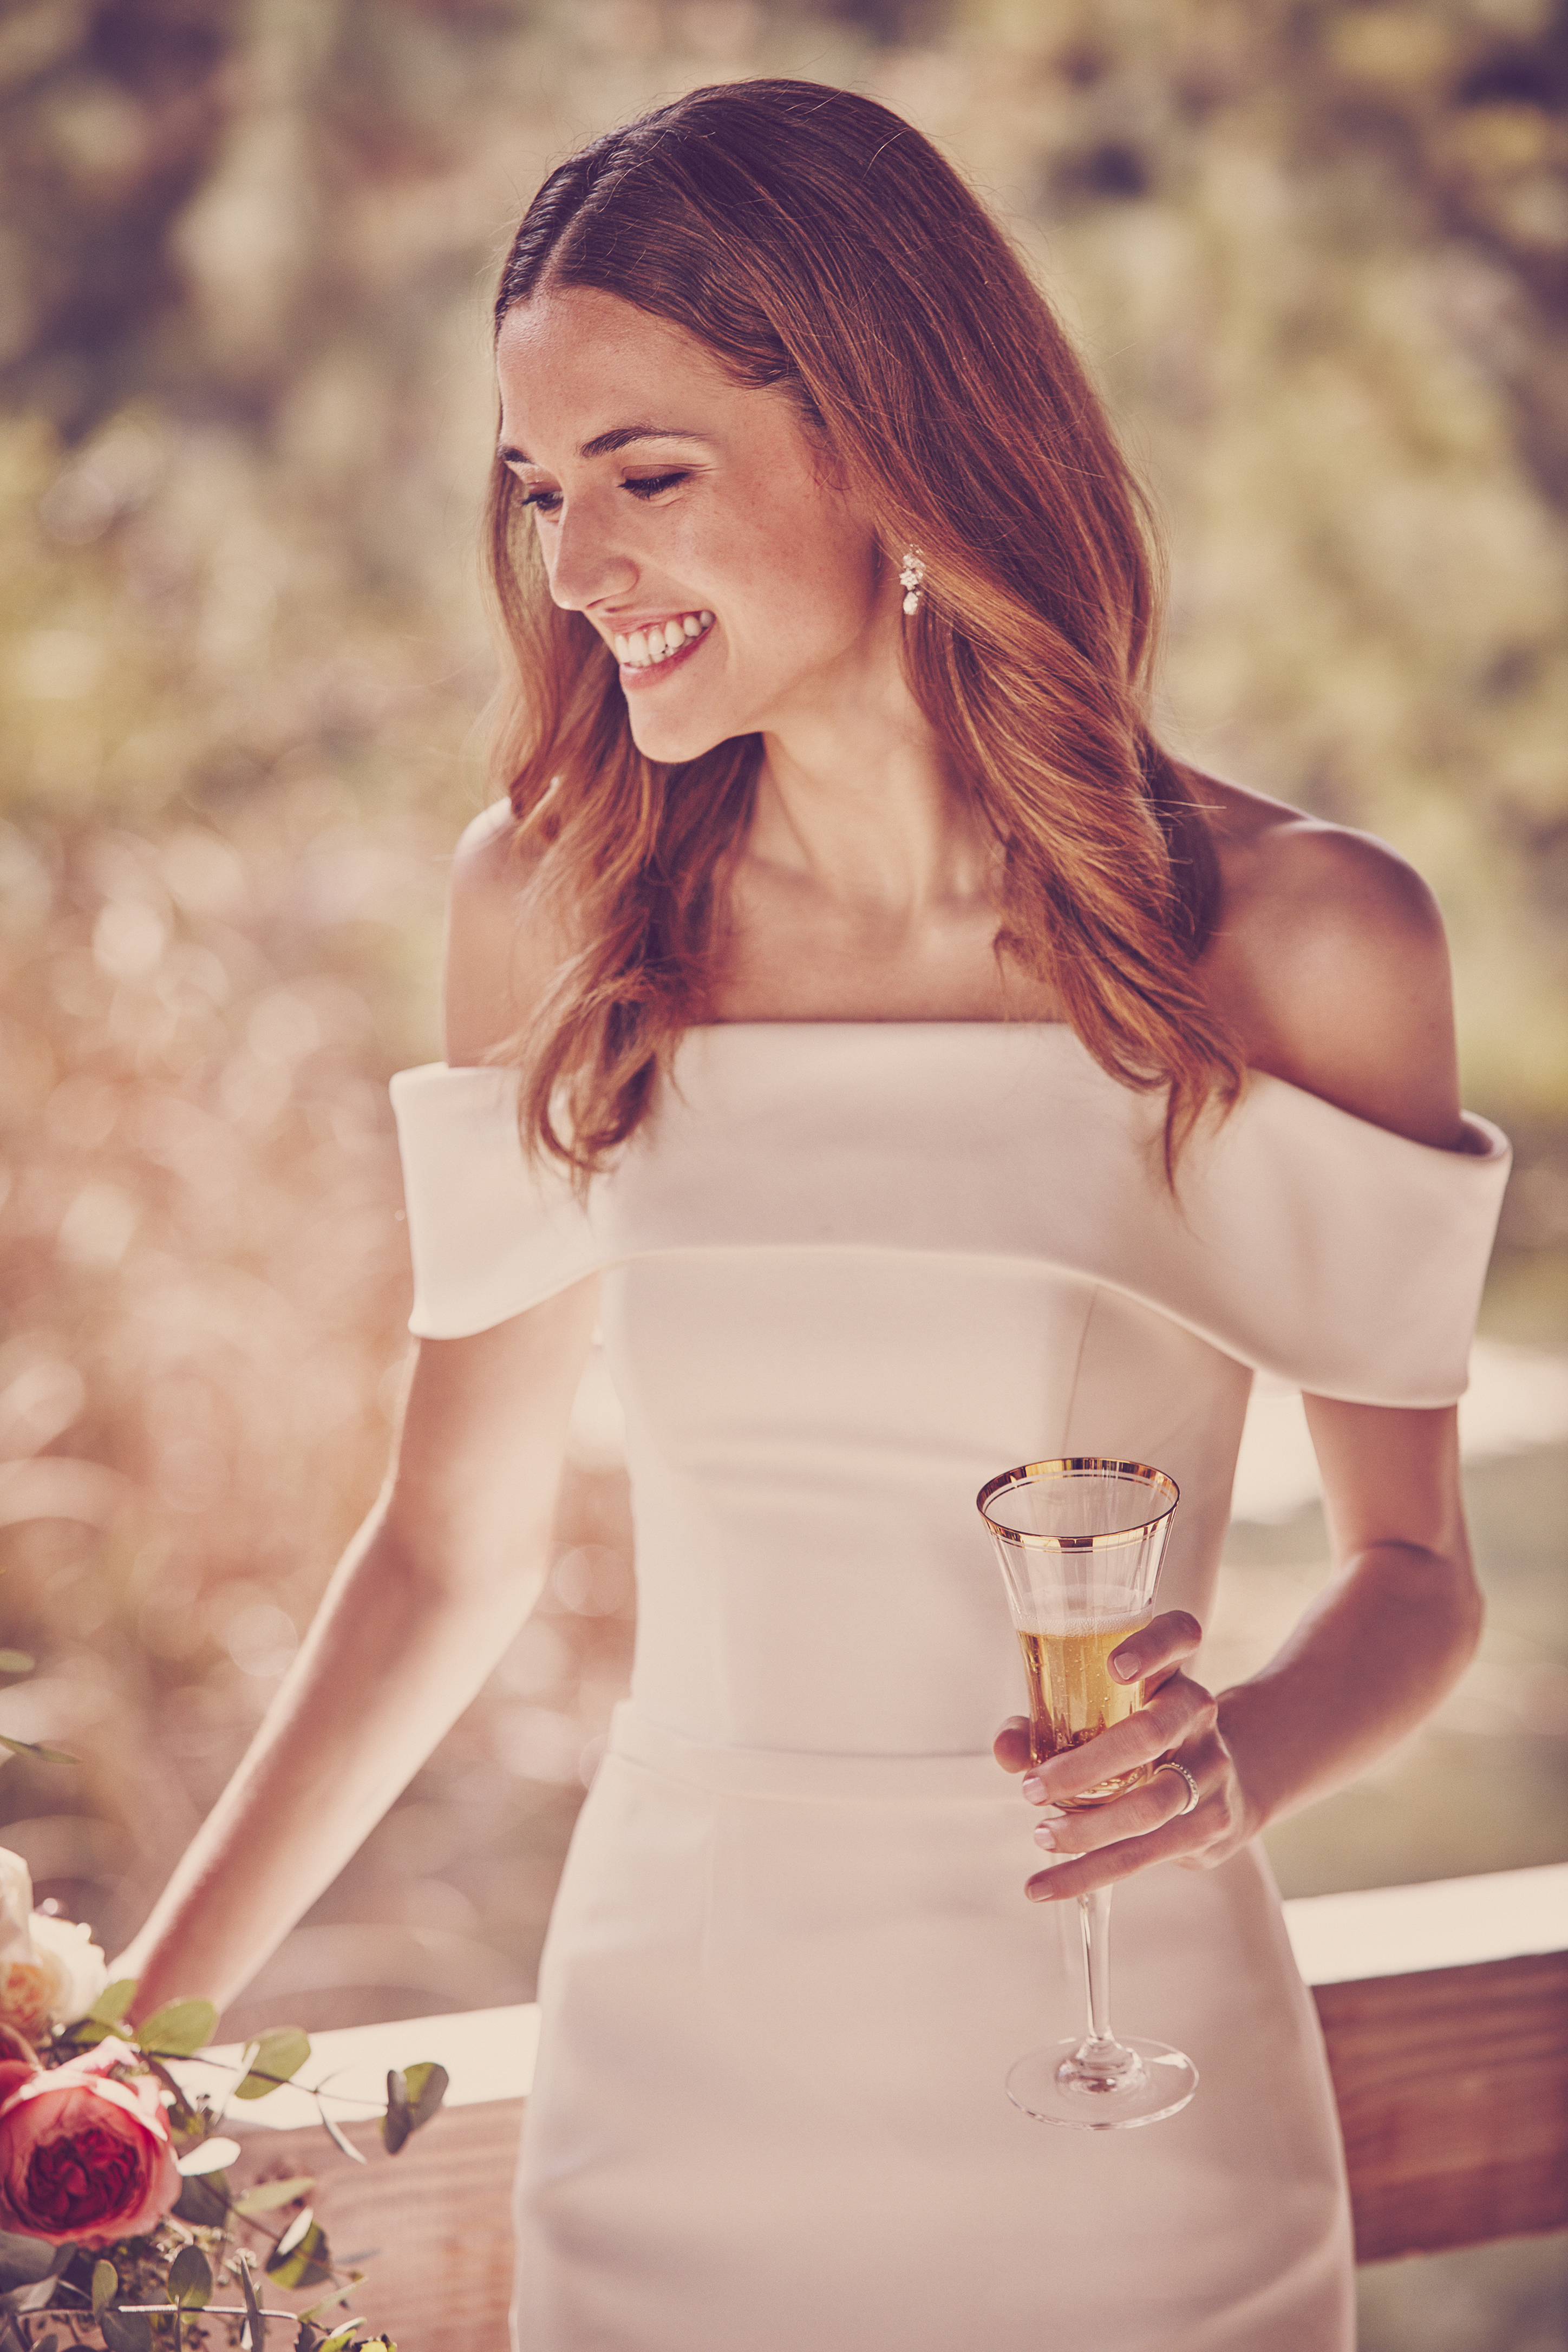 Woman in off-the-shoulder white wedding dress smiling and holding glass of champagne